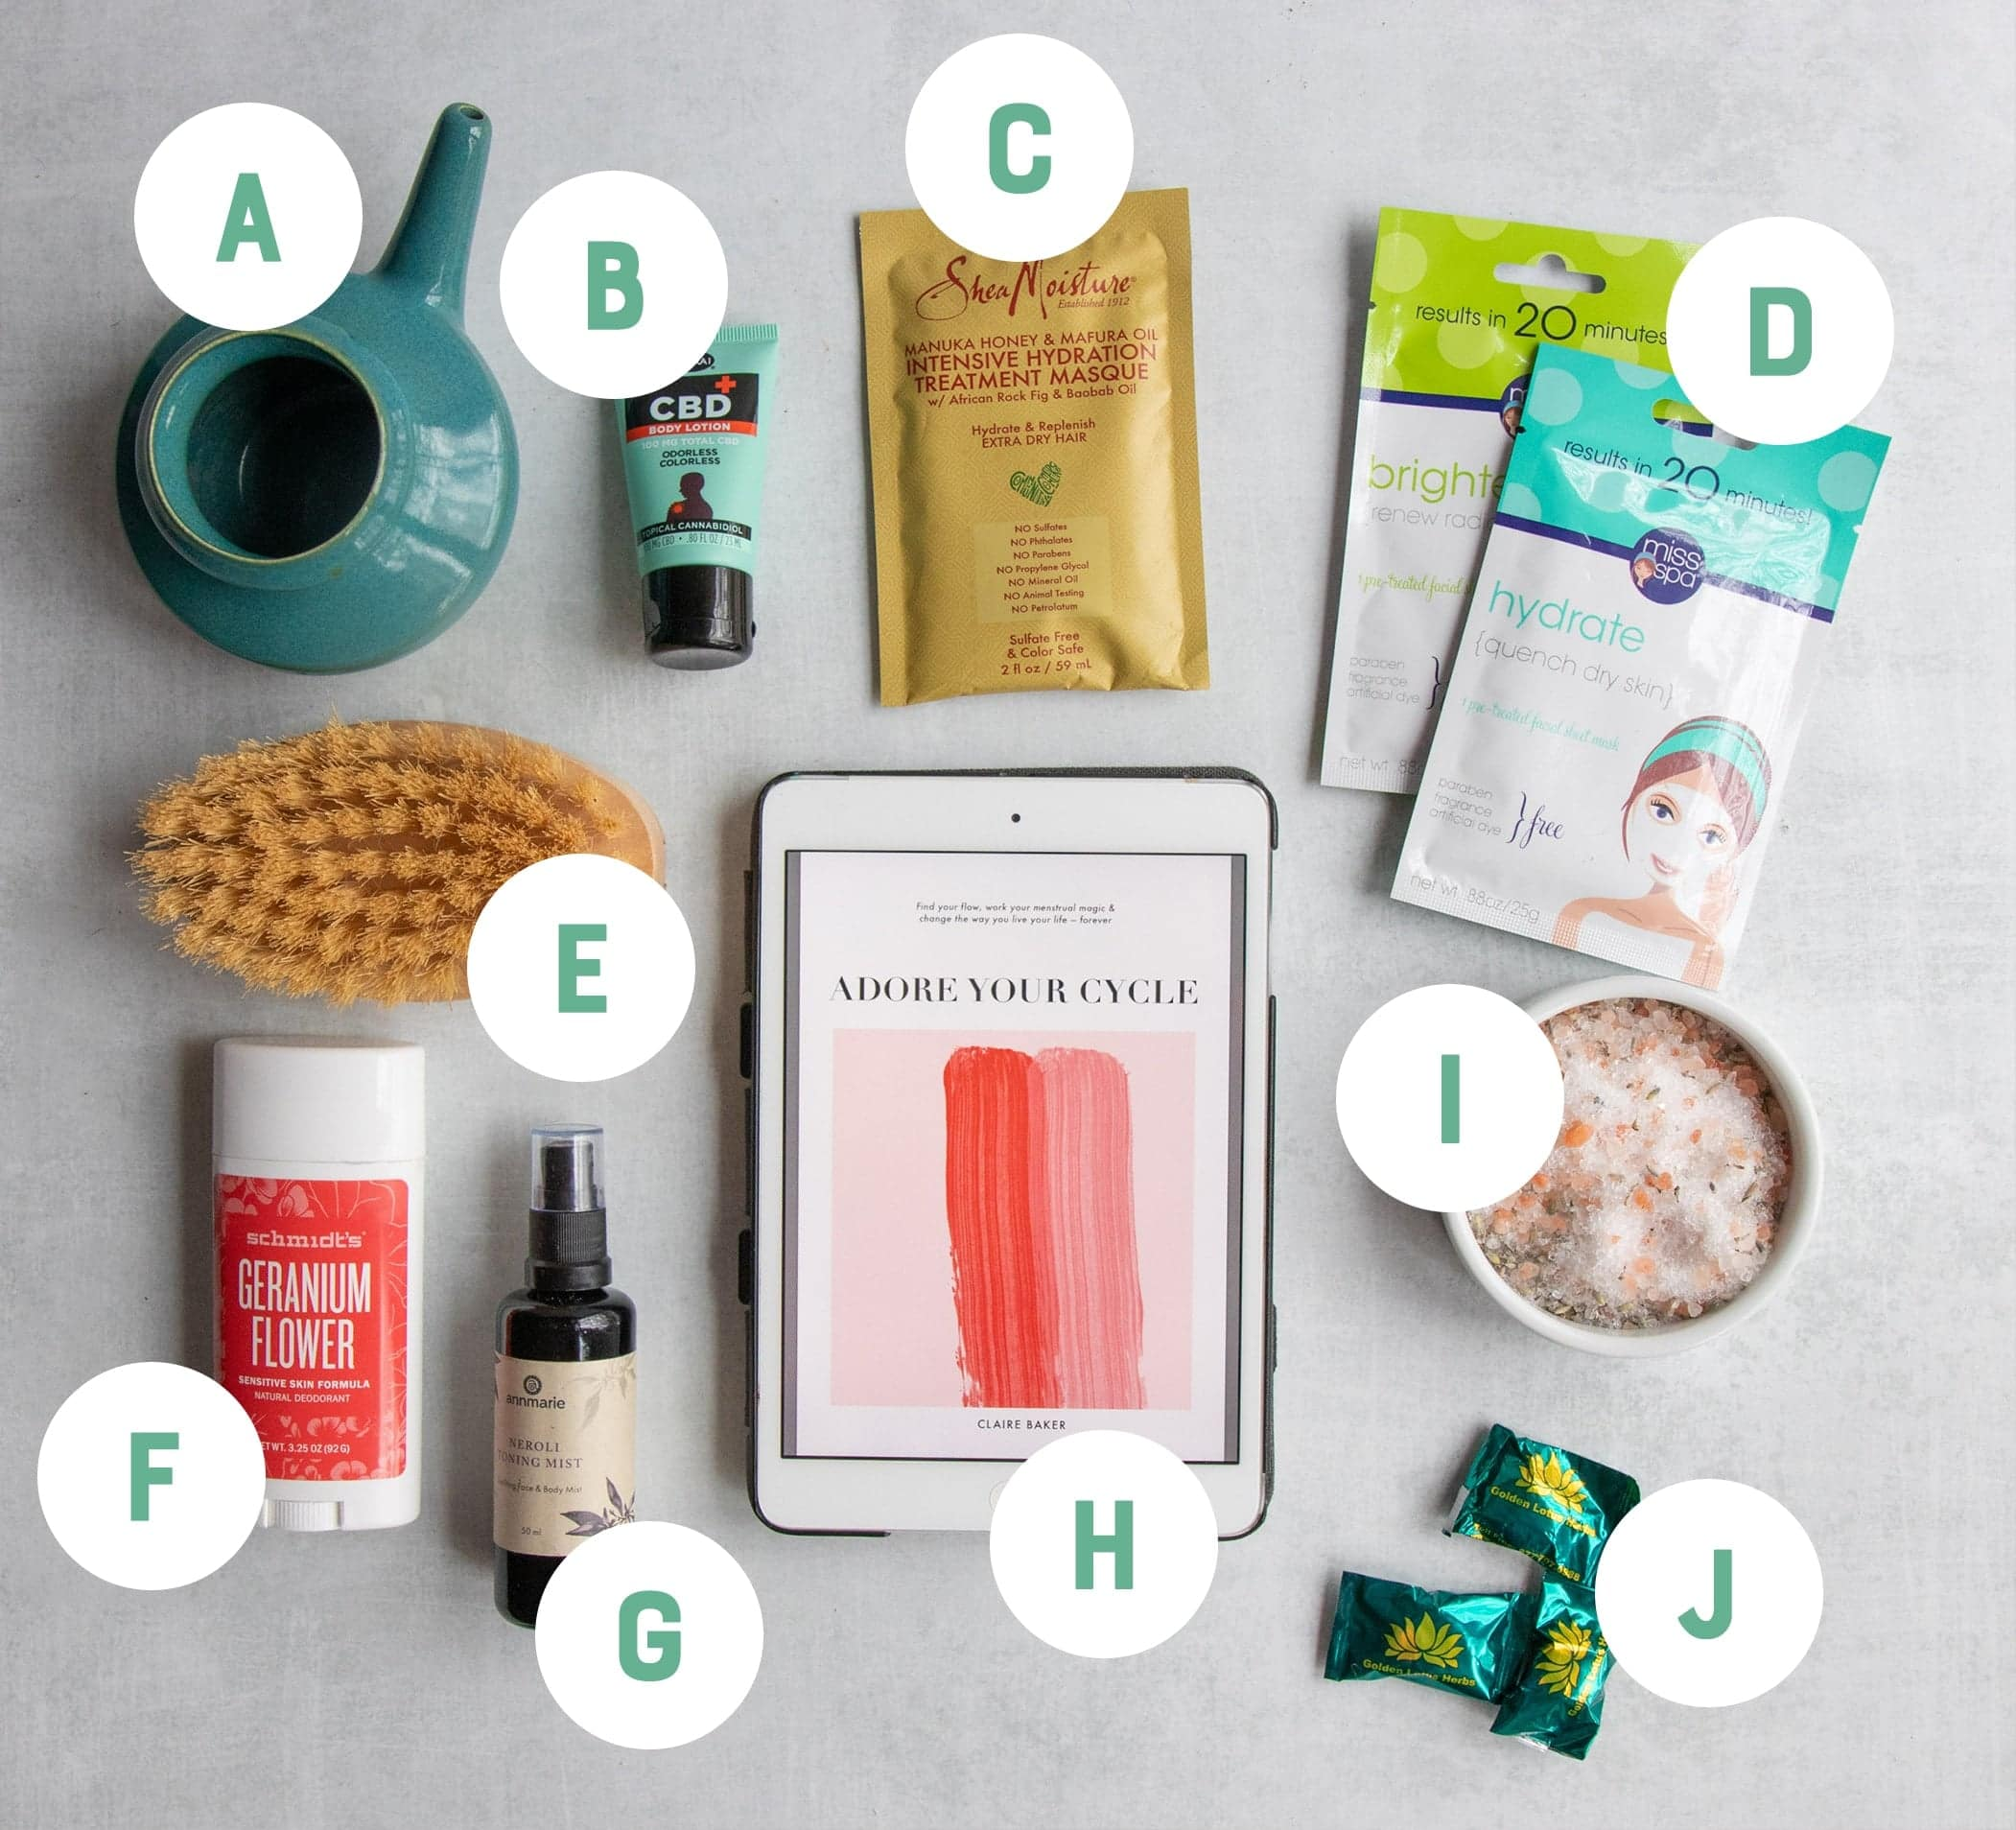 Natural health items arranged on a gray backdrop and labeled with letters: a ceramic neti pot, natural deodorant, face and hair masks, a dry brush, an ebook, bath salts